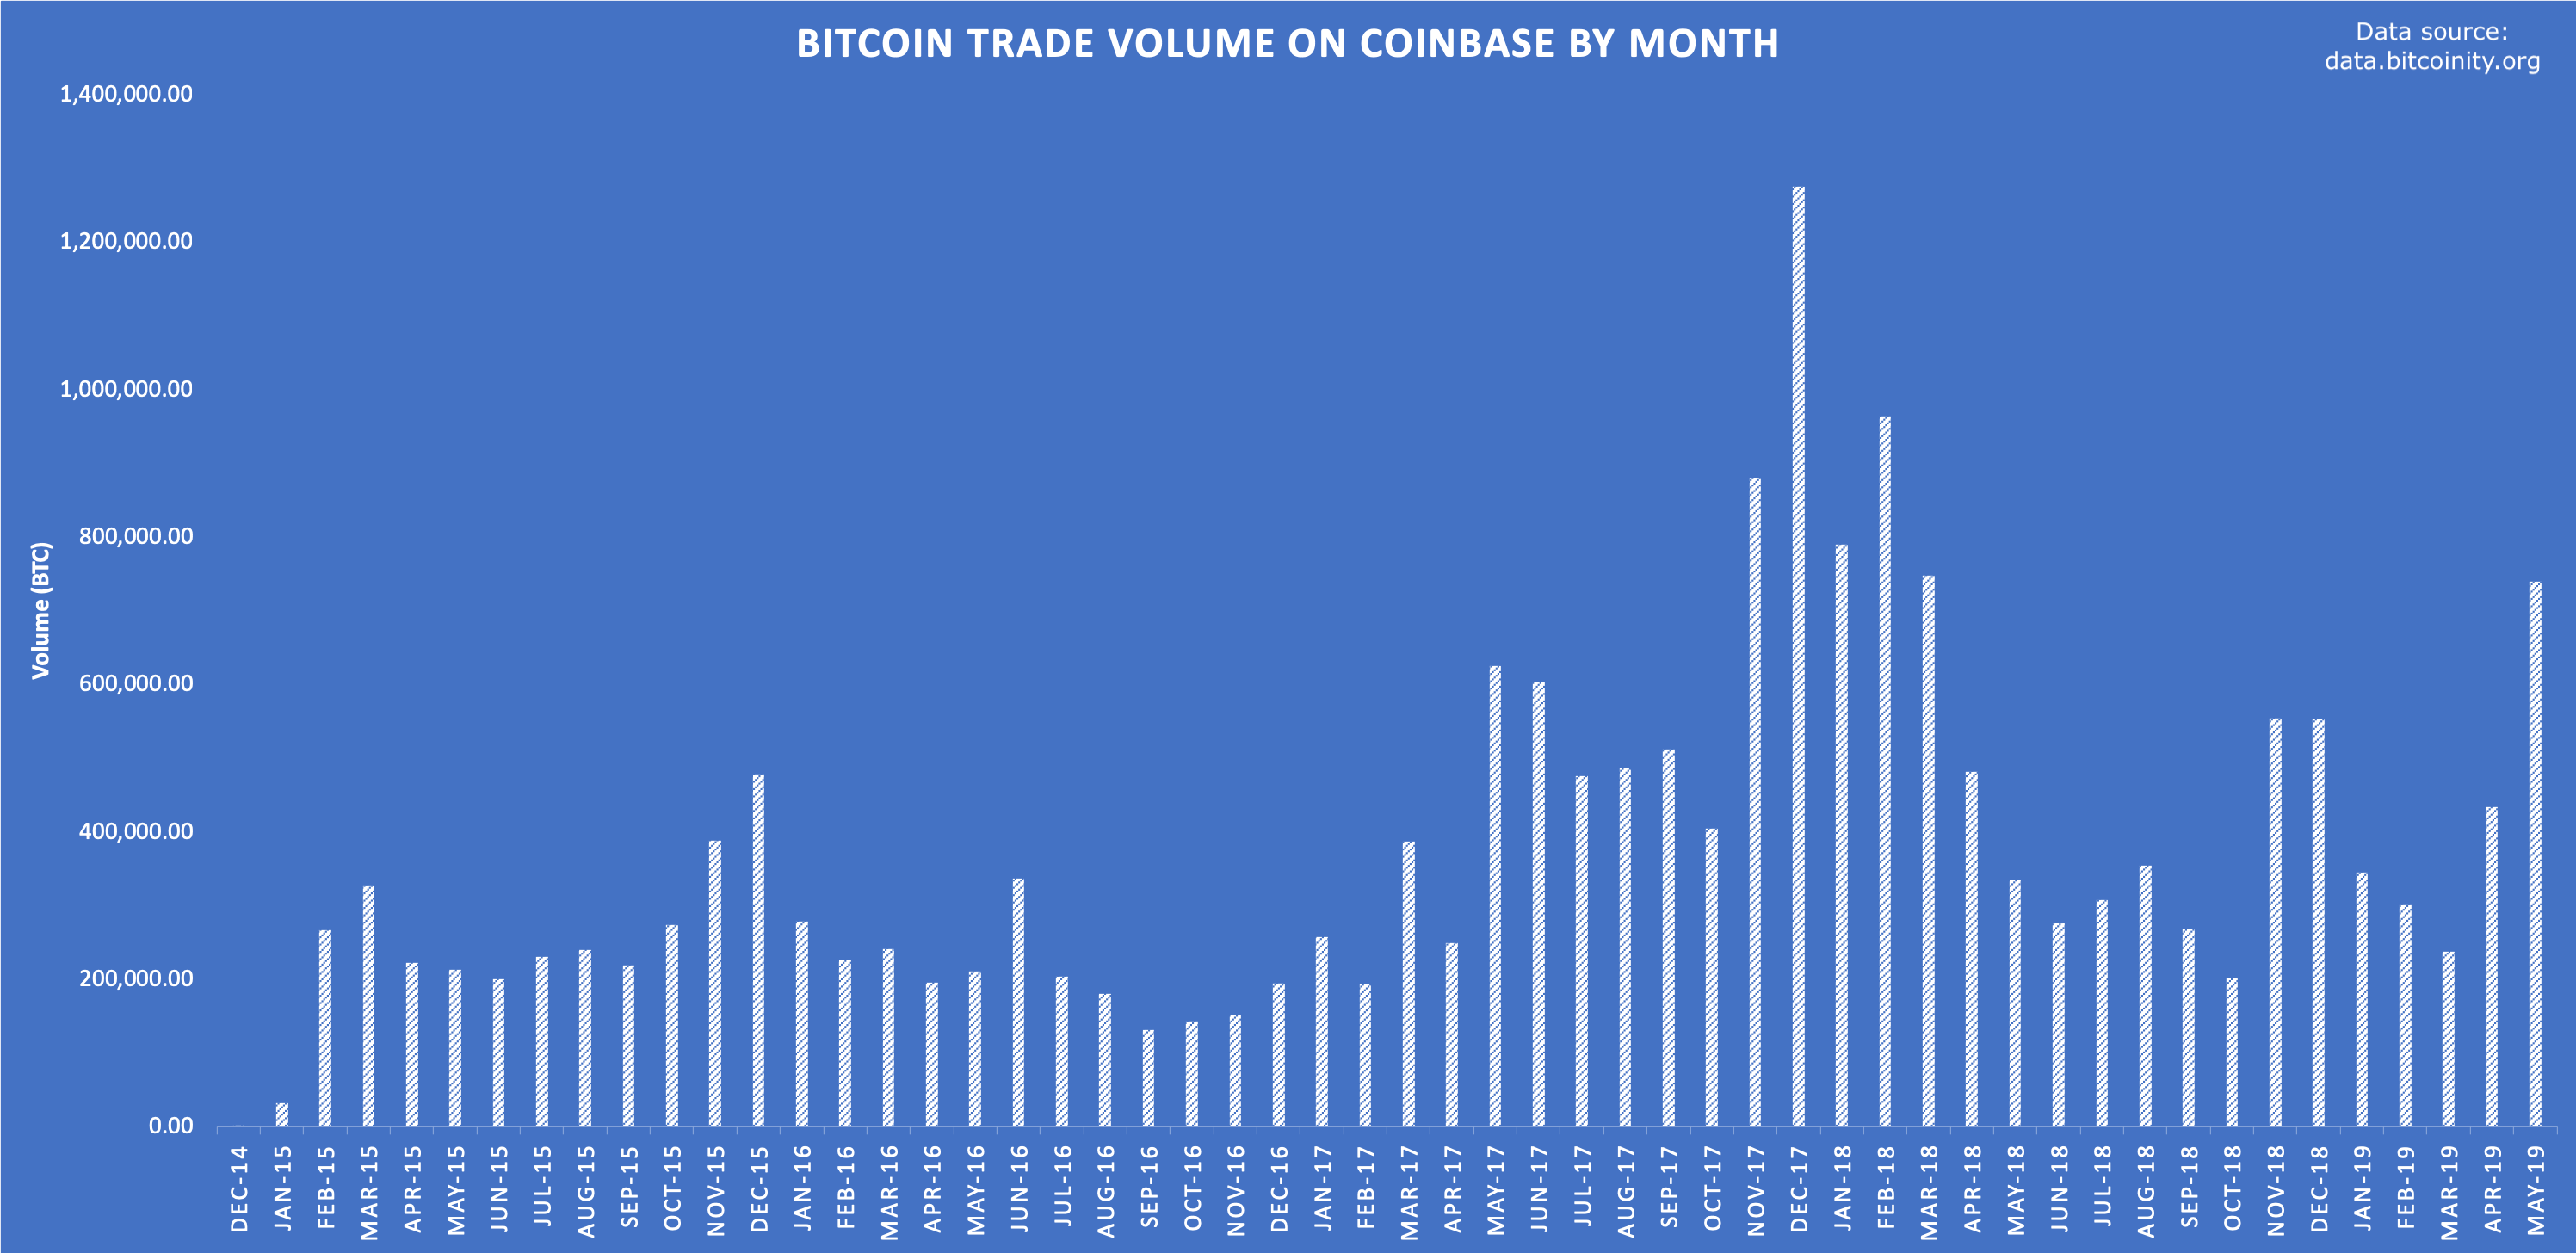 https://static.coindesk.com/wp-content/uploads/2019/06/cb-vol.png